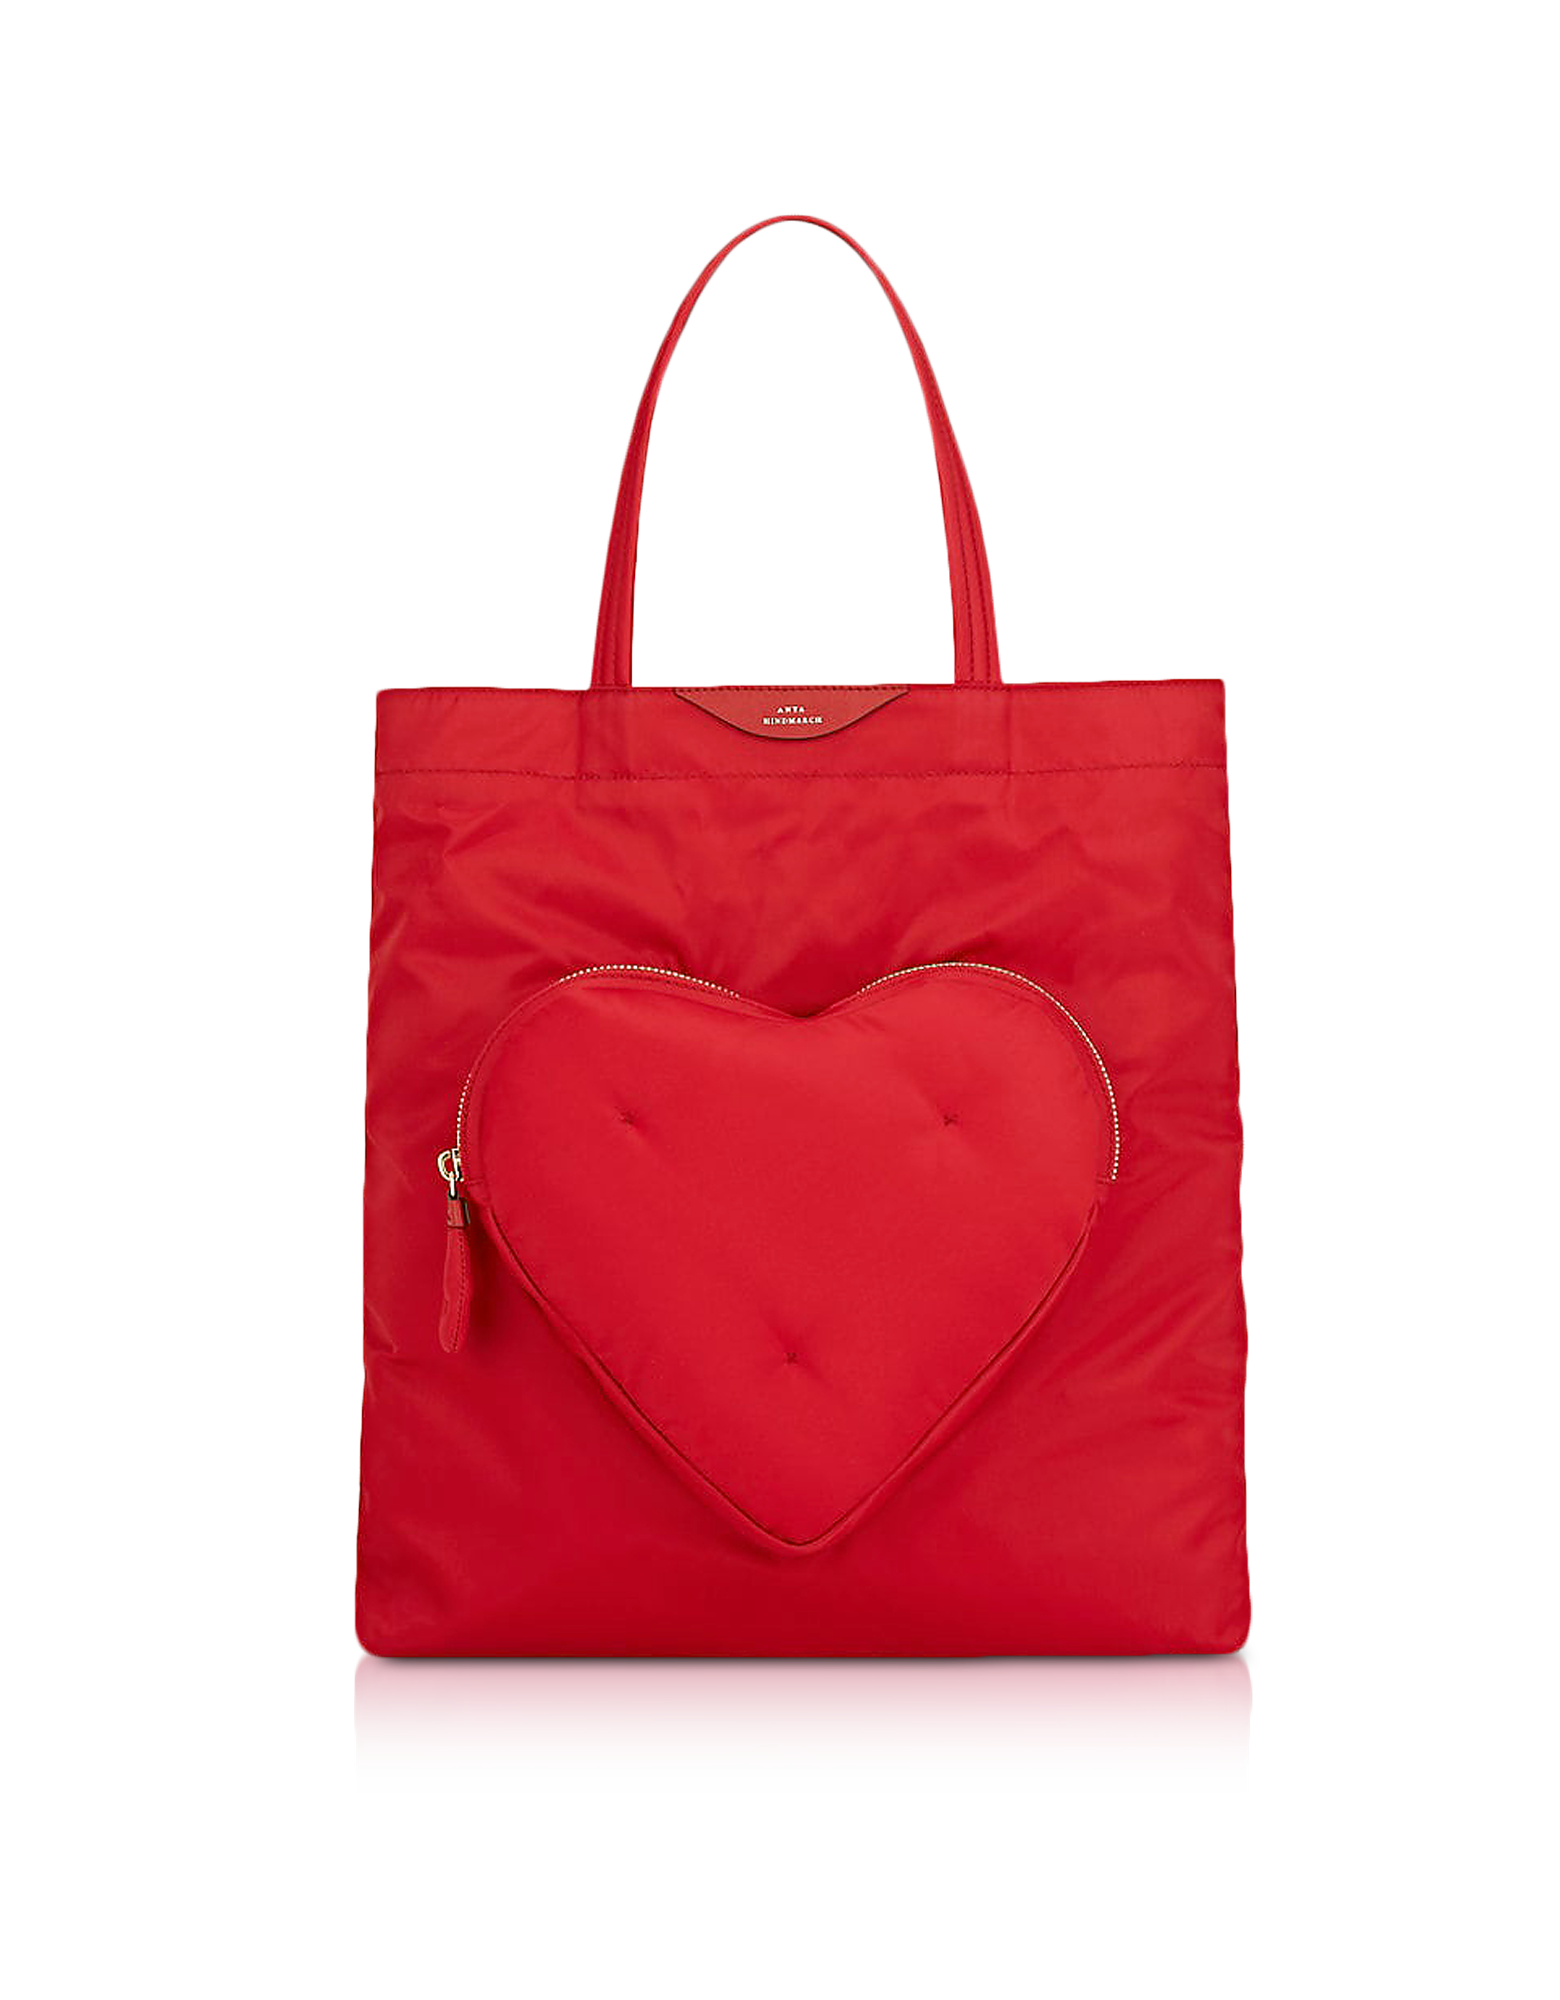 Image of Red Nylon Chubby Heart Tote Bag